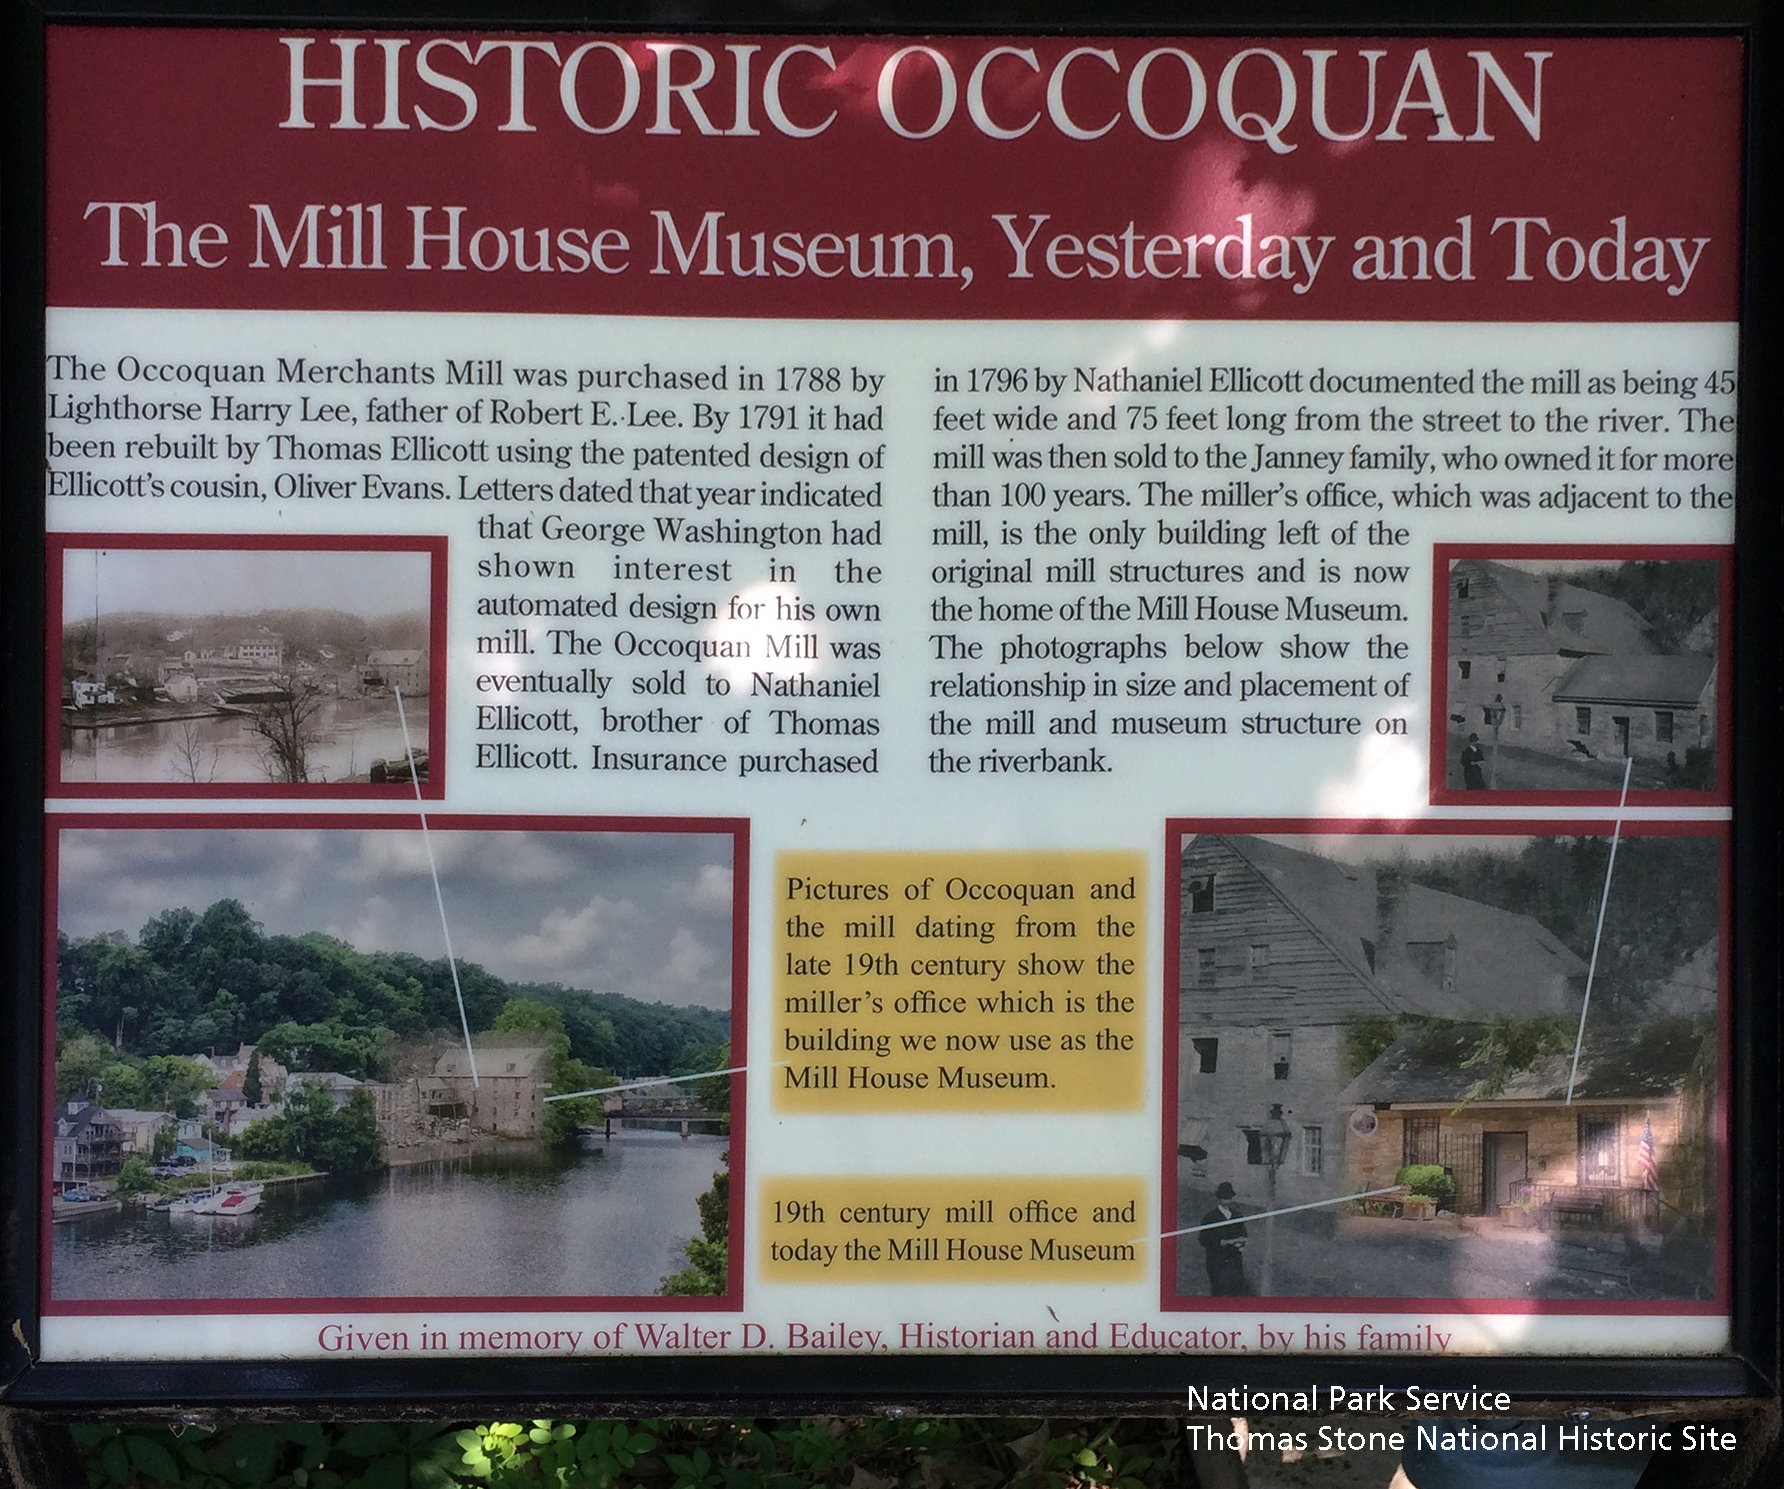 """Historic Occoquan: The Mill House Museum, Yesterday and Today"" Marker at the Mill House"